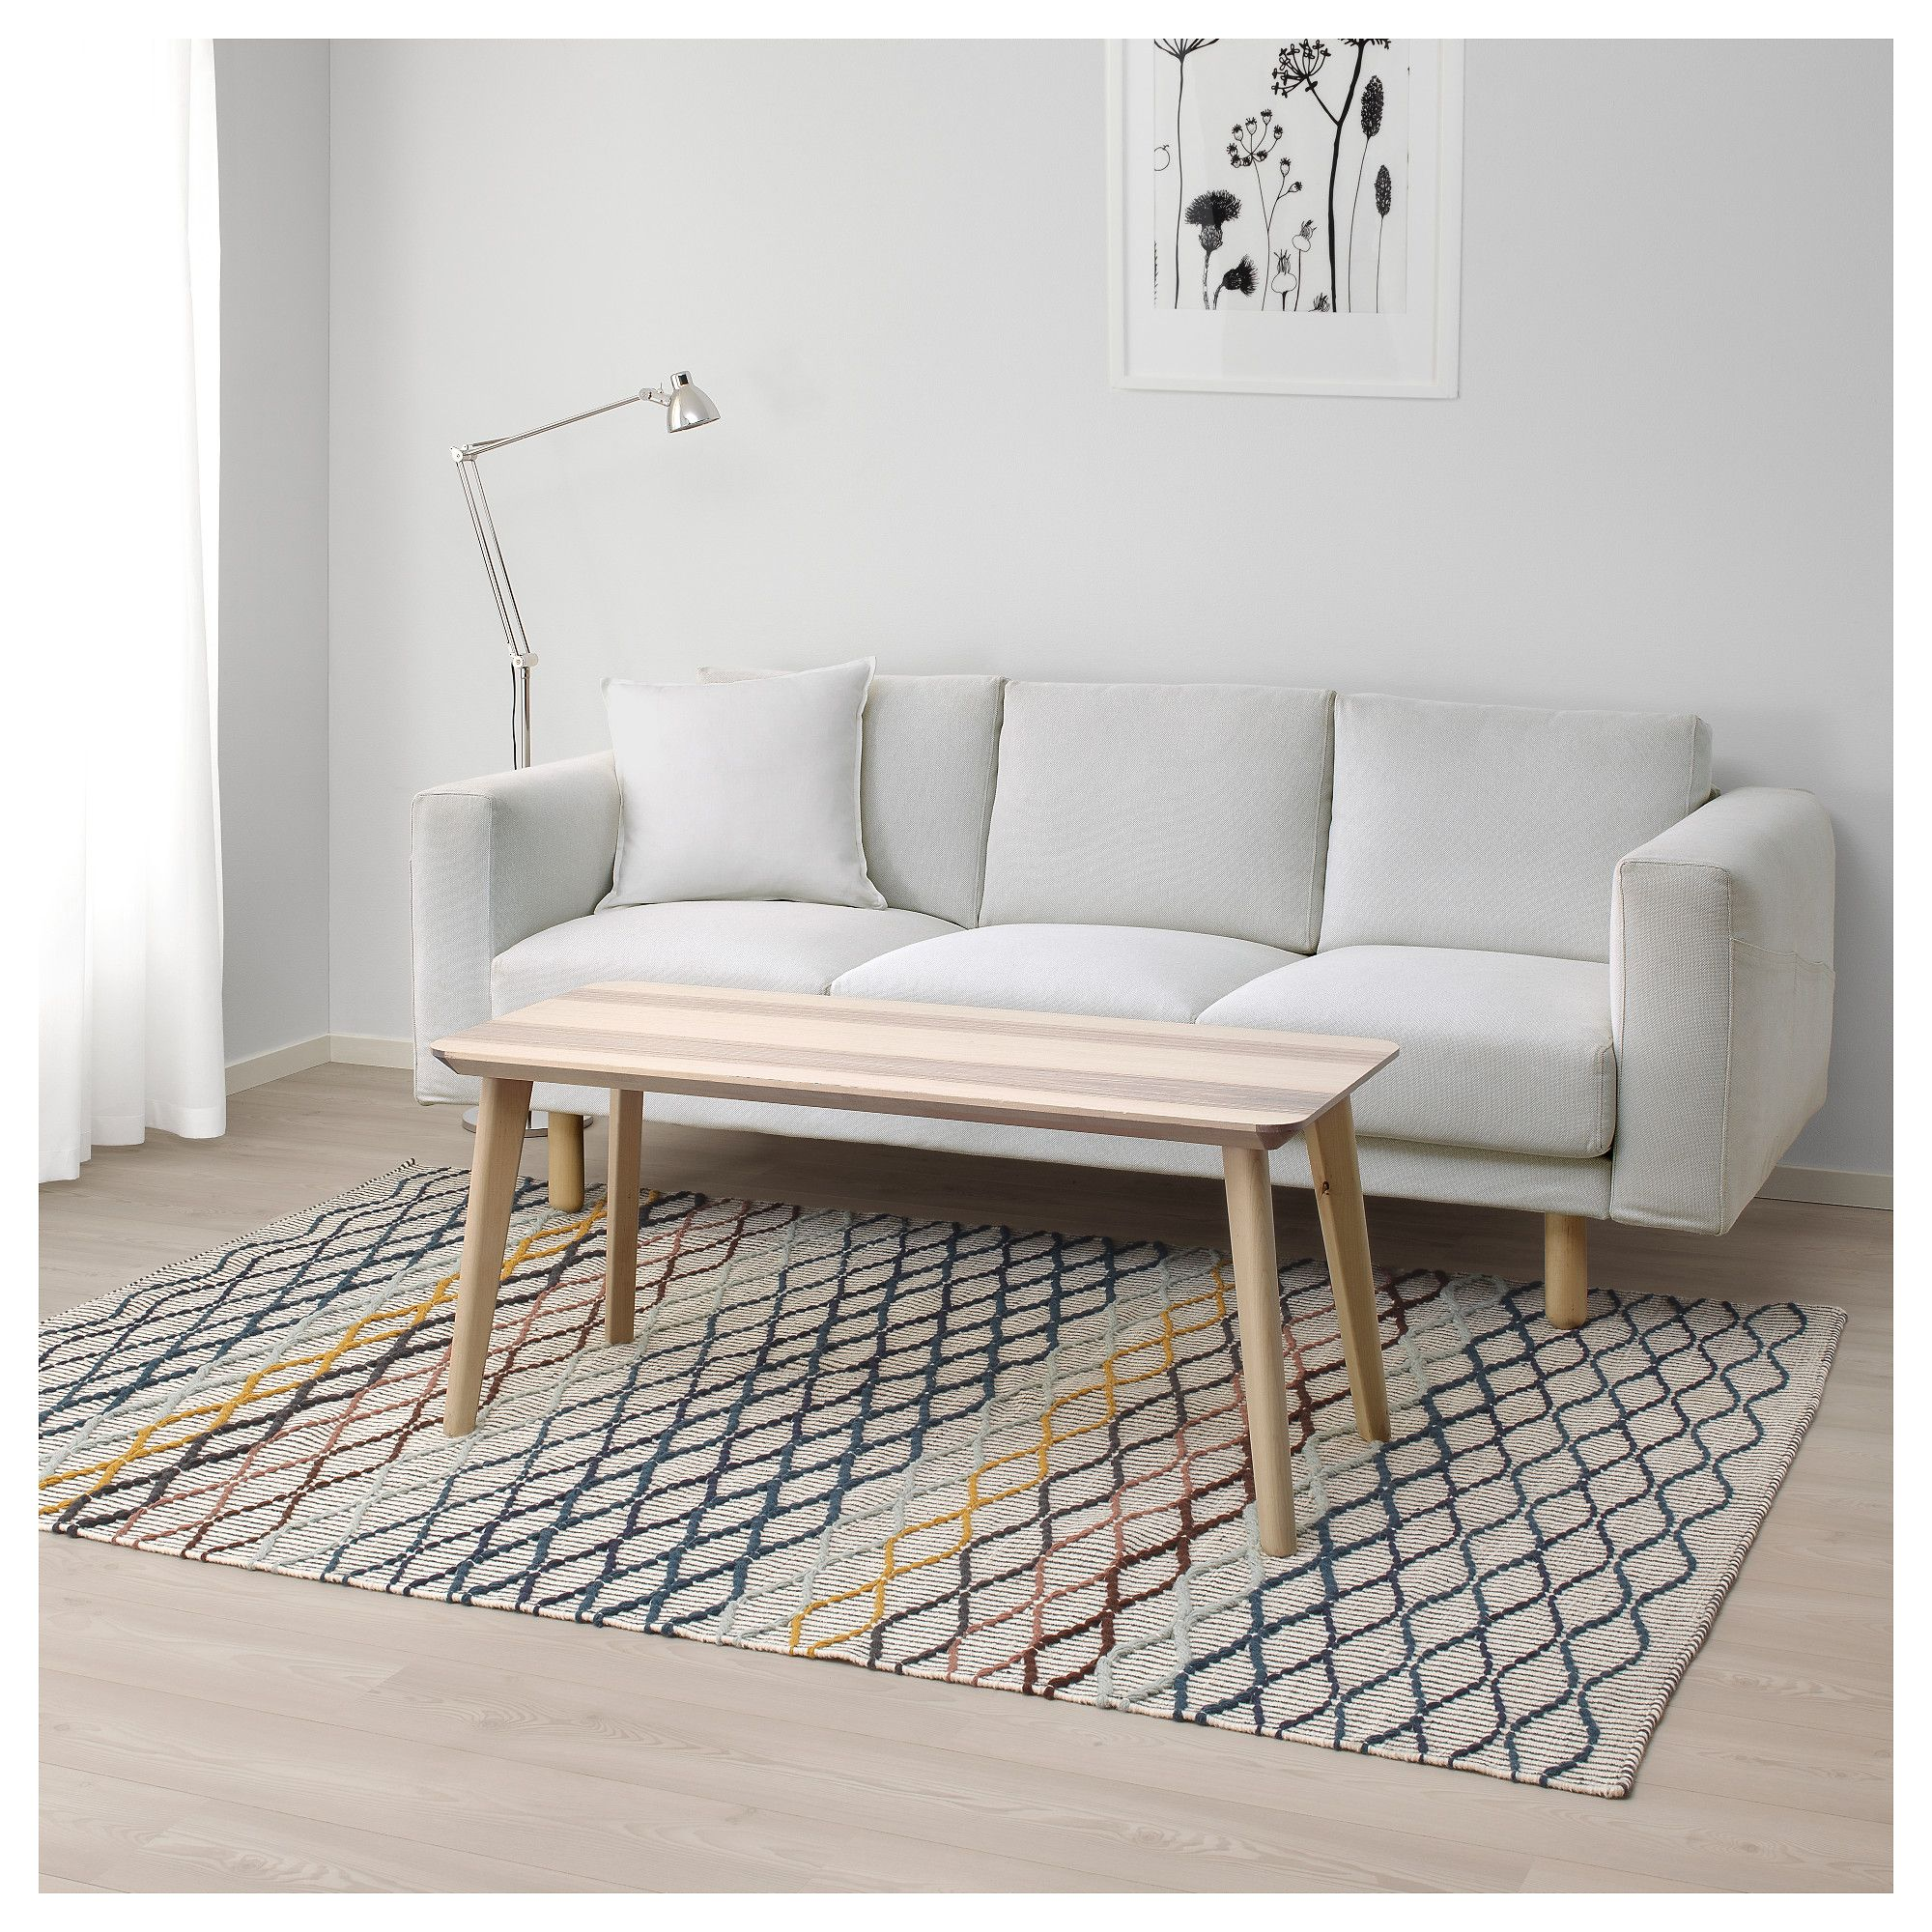 Furniture Home Furnishings Find Your Inspiration Flatwoven Ikea Furniture [ 2000 x 2000 Pixel ]